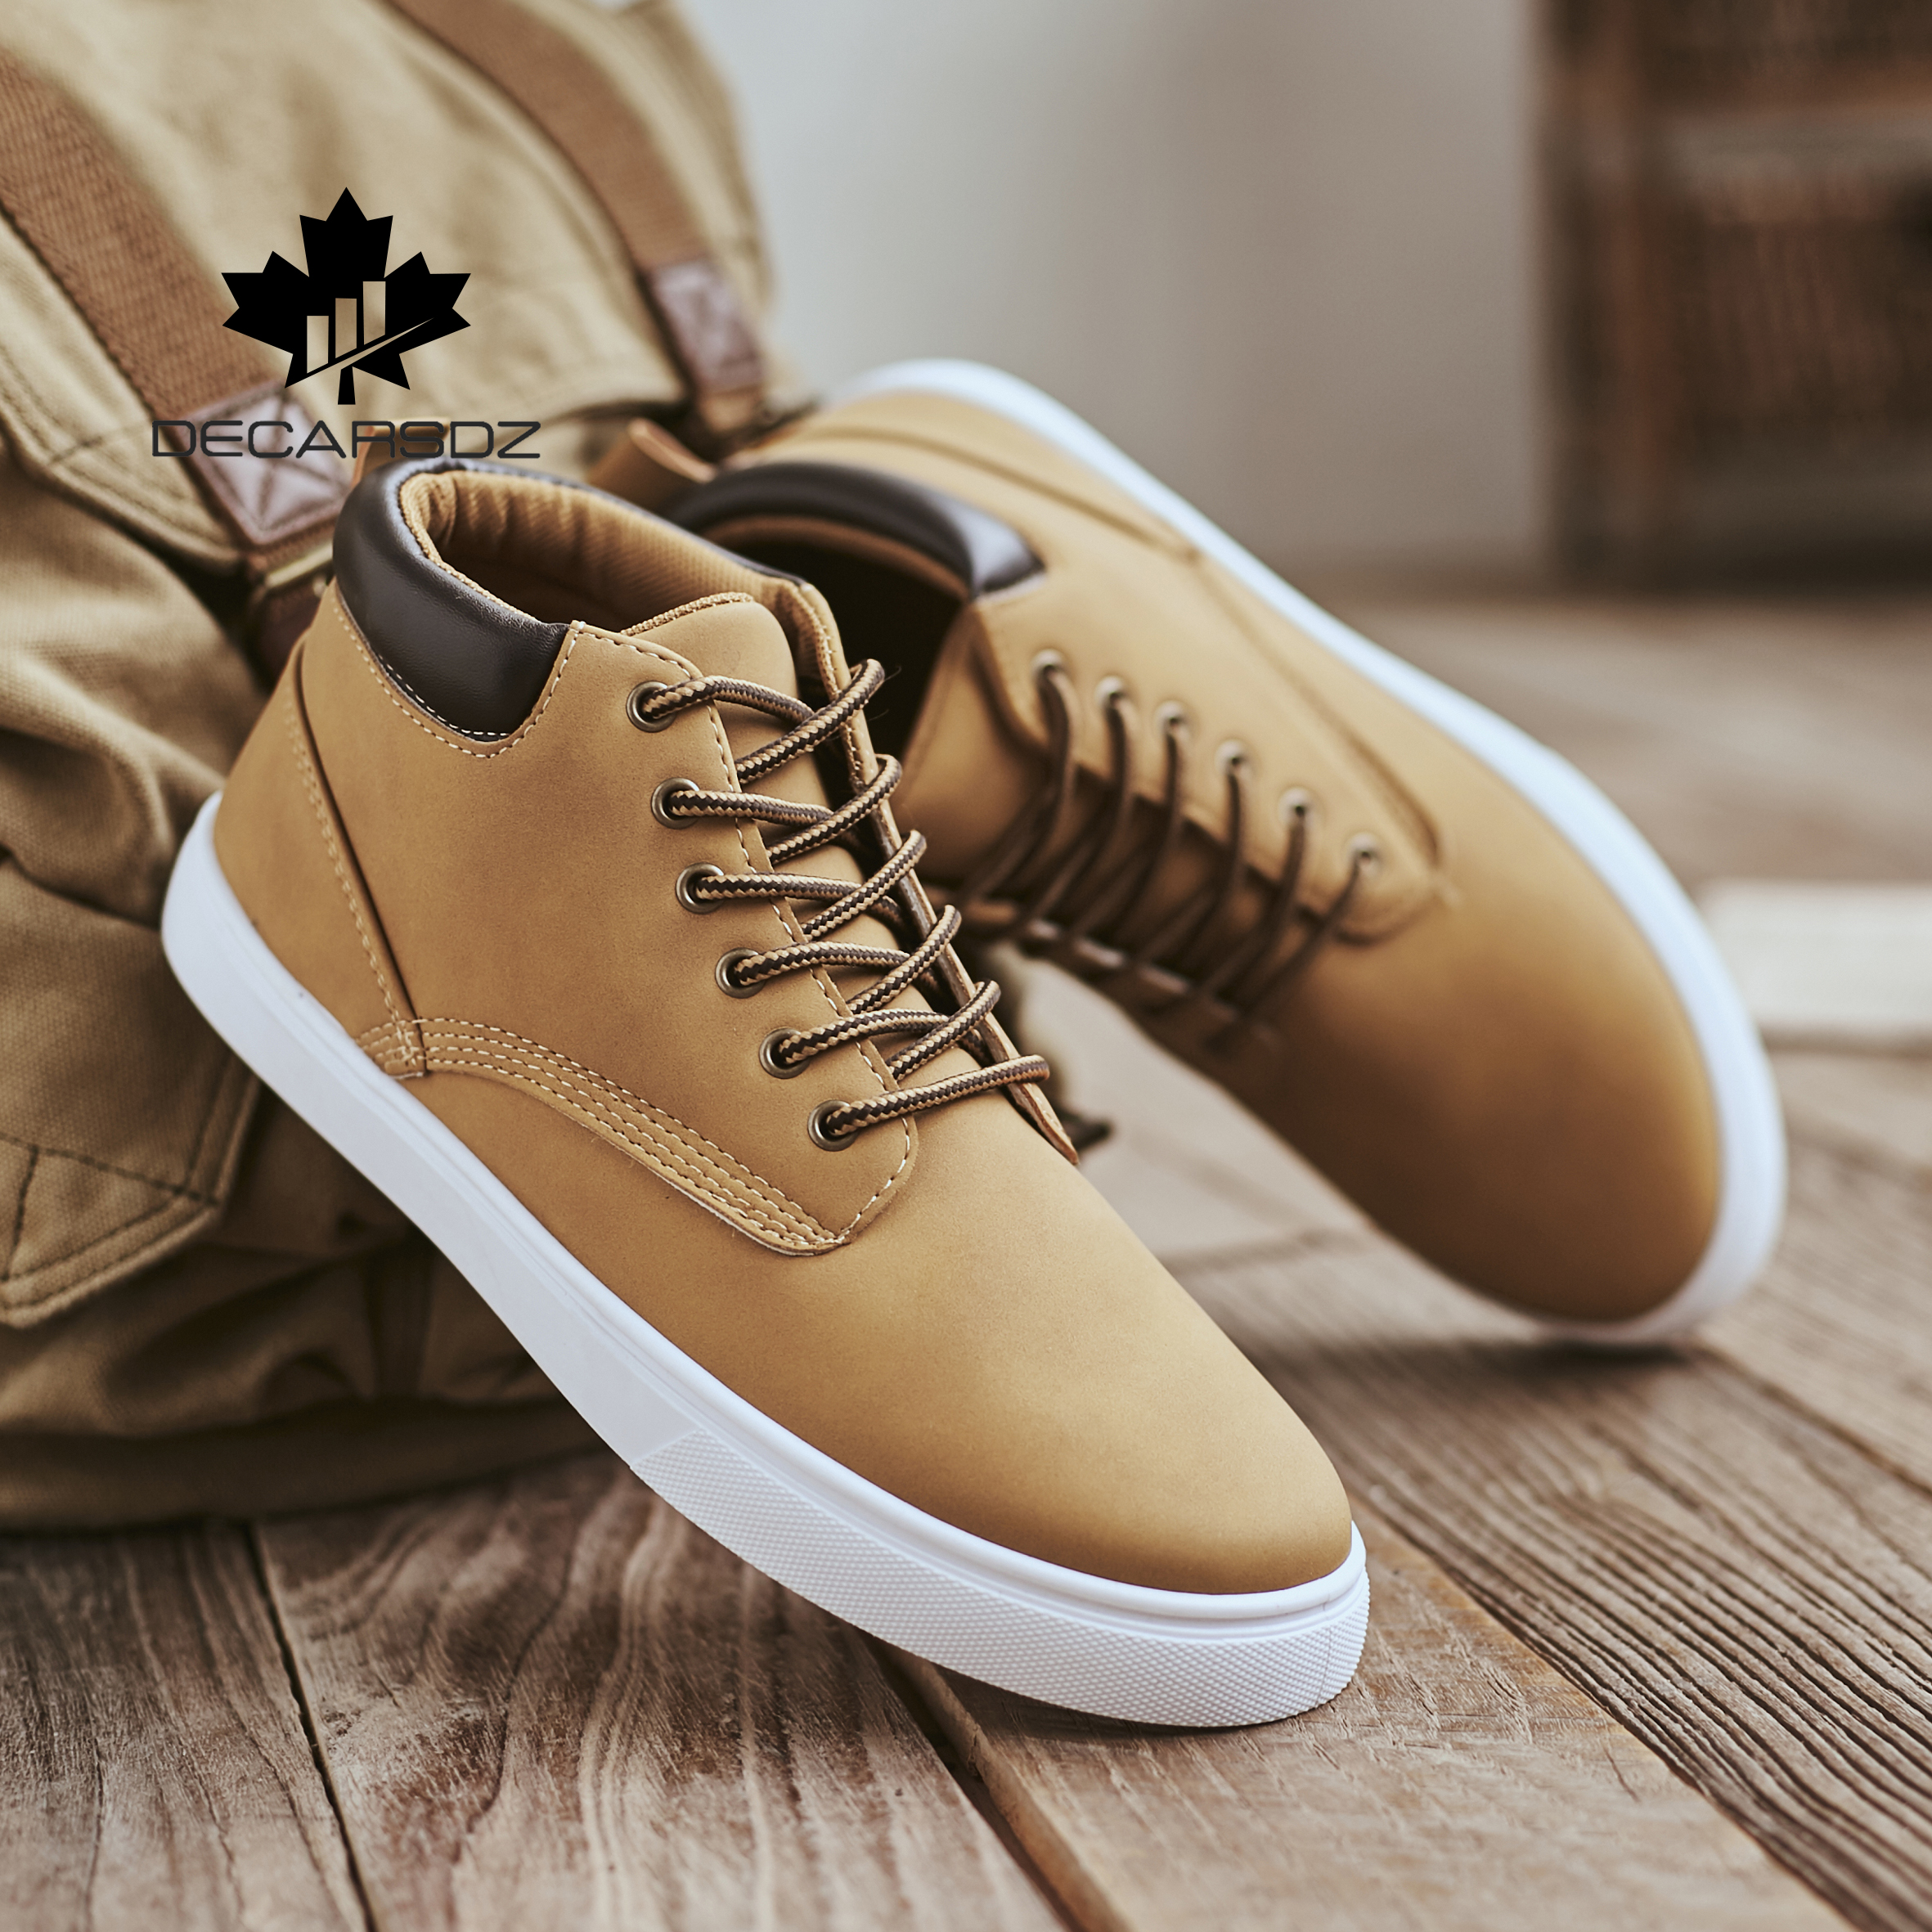 2020 Casual Boots Shoes Man Spring Autumn flat Men Boots Comfy Lace-up Designers Popular Style Basic Boots Men Casual Shoes 1